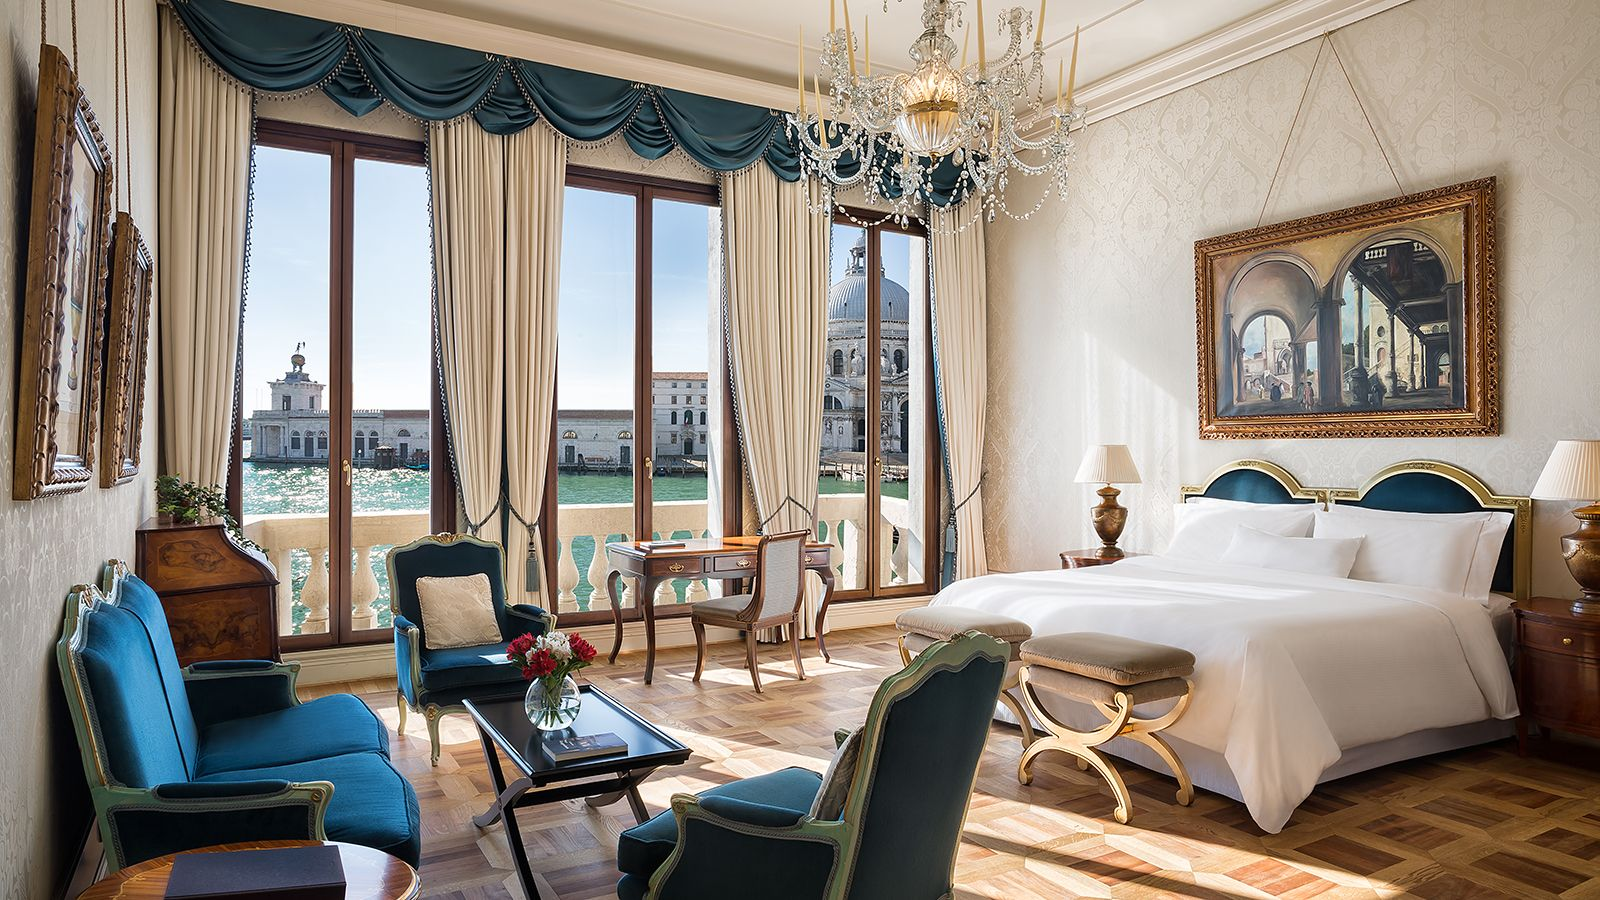 Image of the Grand Canal room at The Westin Europa & Regina, Venice